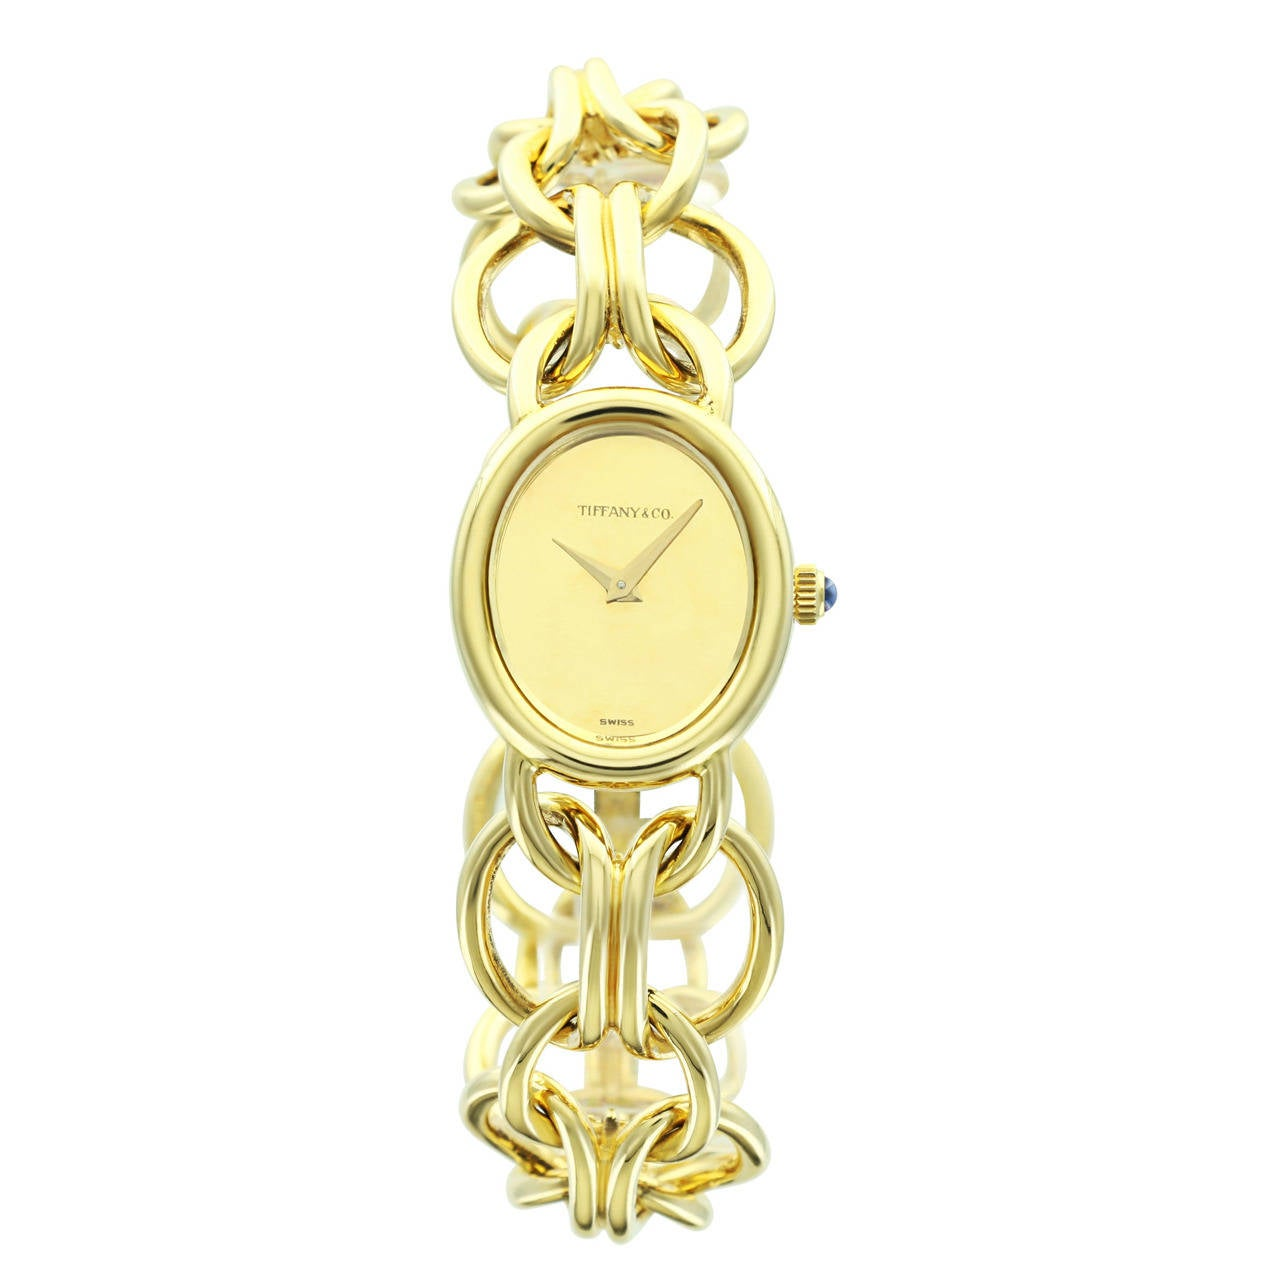 Tiffany & Co. Lady's Yellow Gold Champagne Dial Bracelet Watch